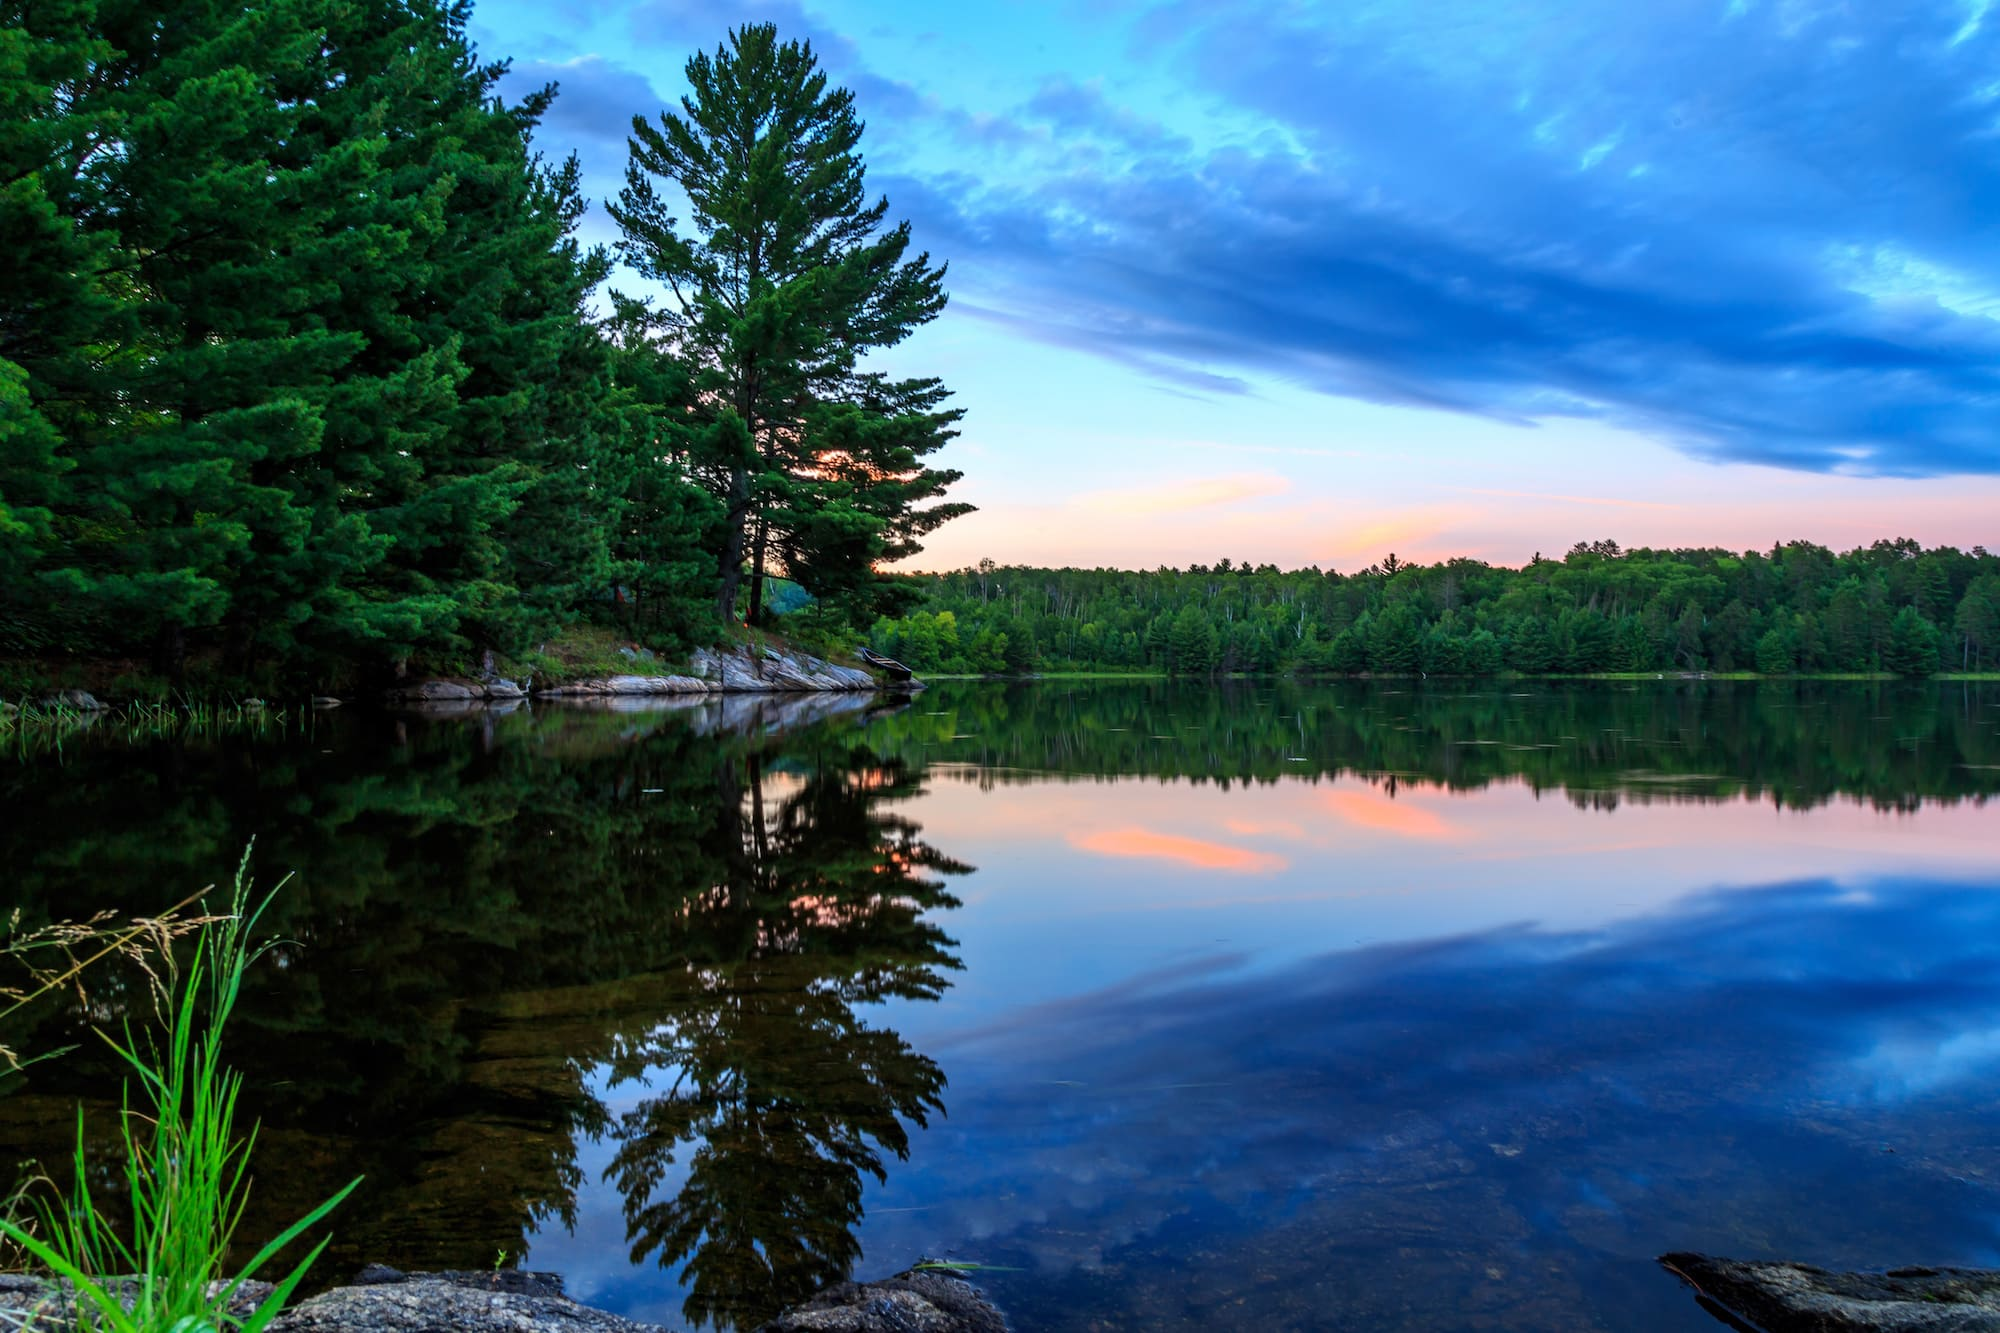 Voyageurs National Park should be on your adventure bucketlist in 2019